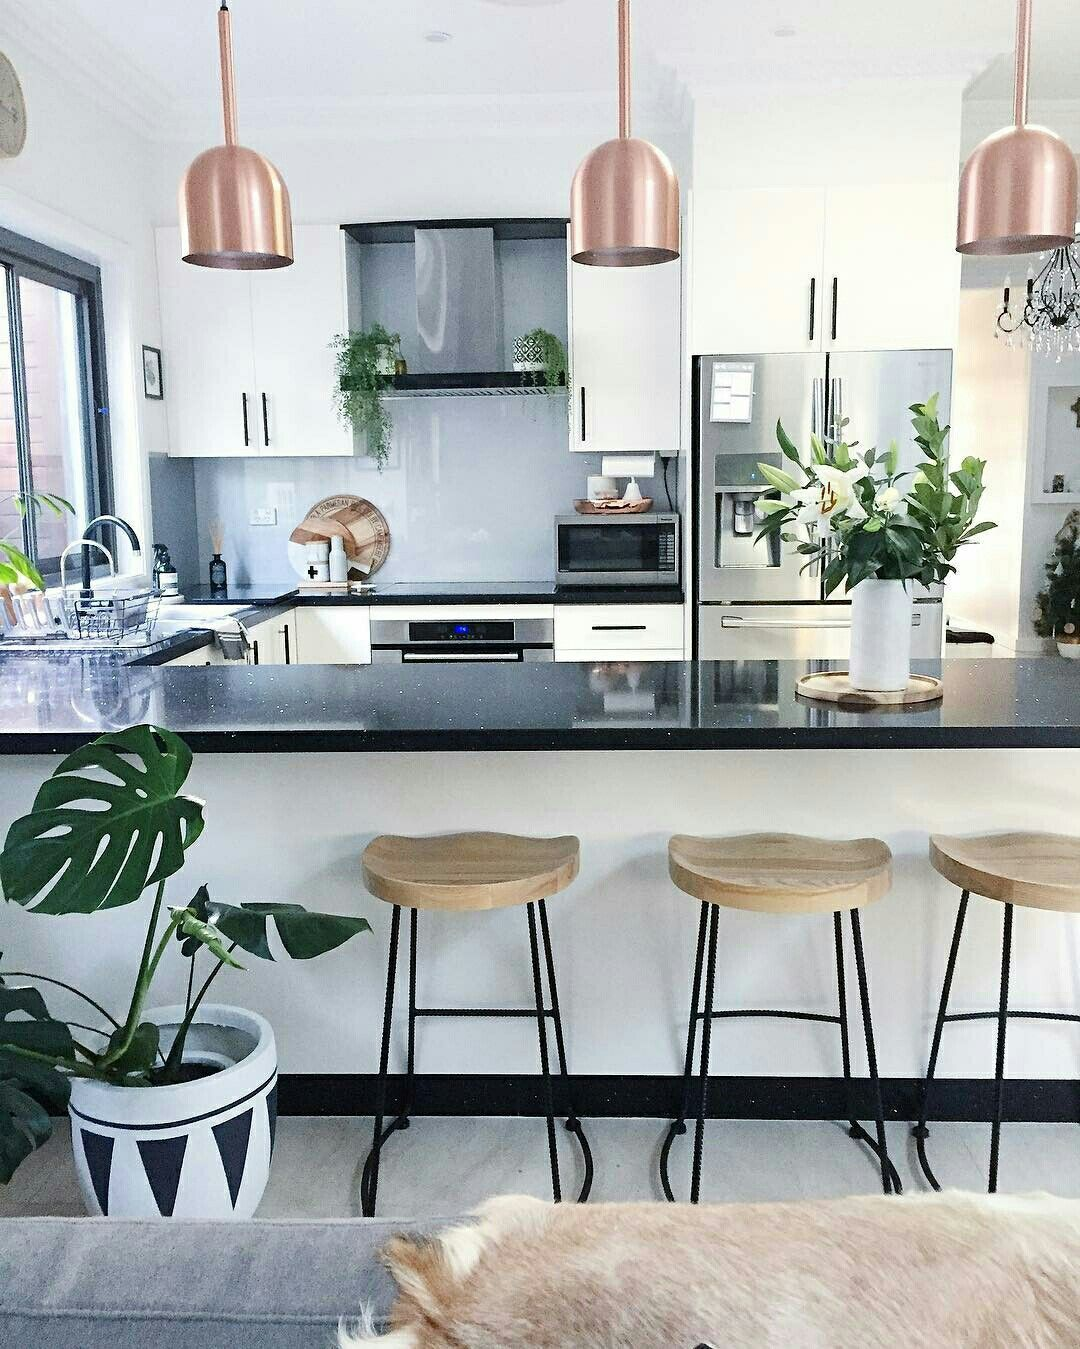 The lovely kitchen of Pin by aliz